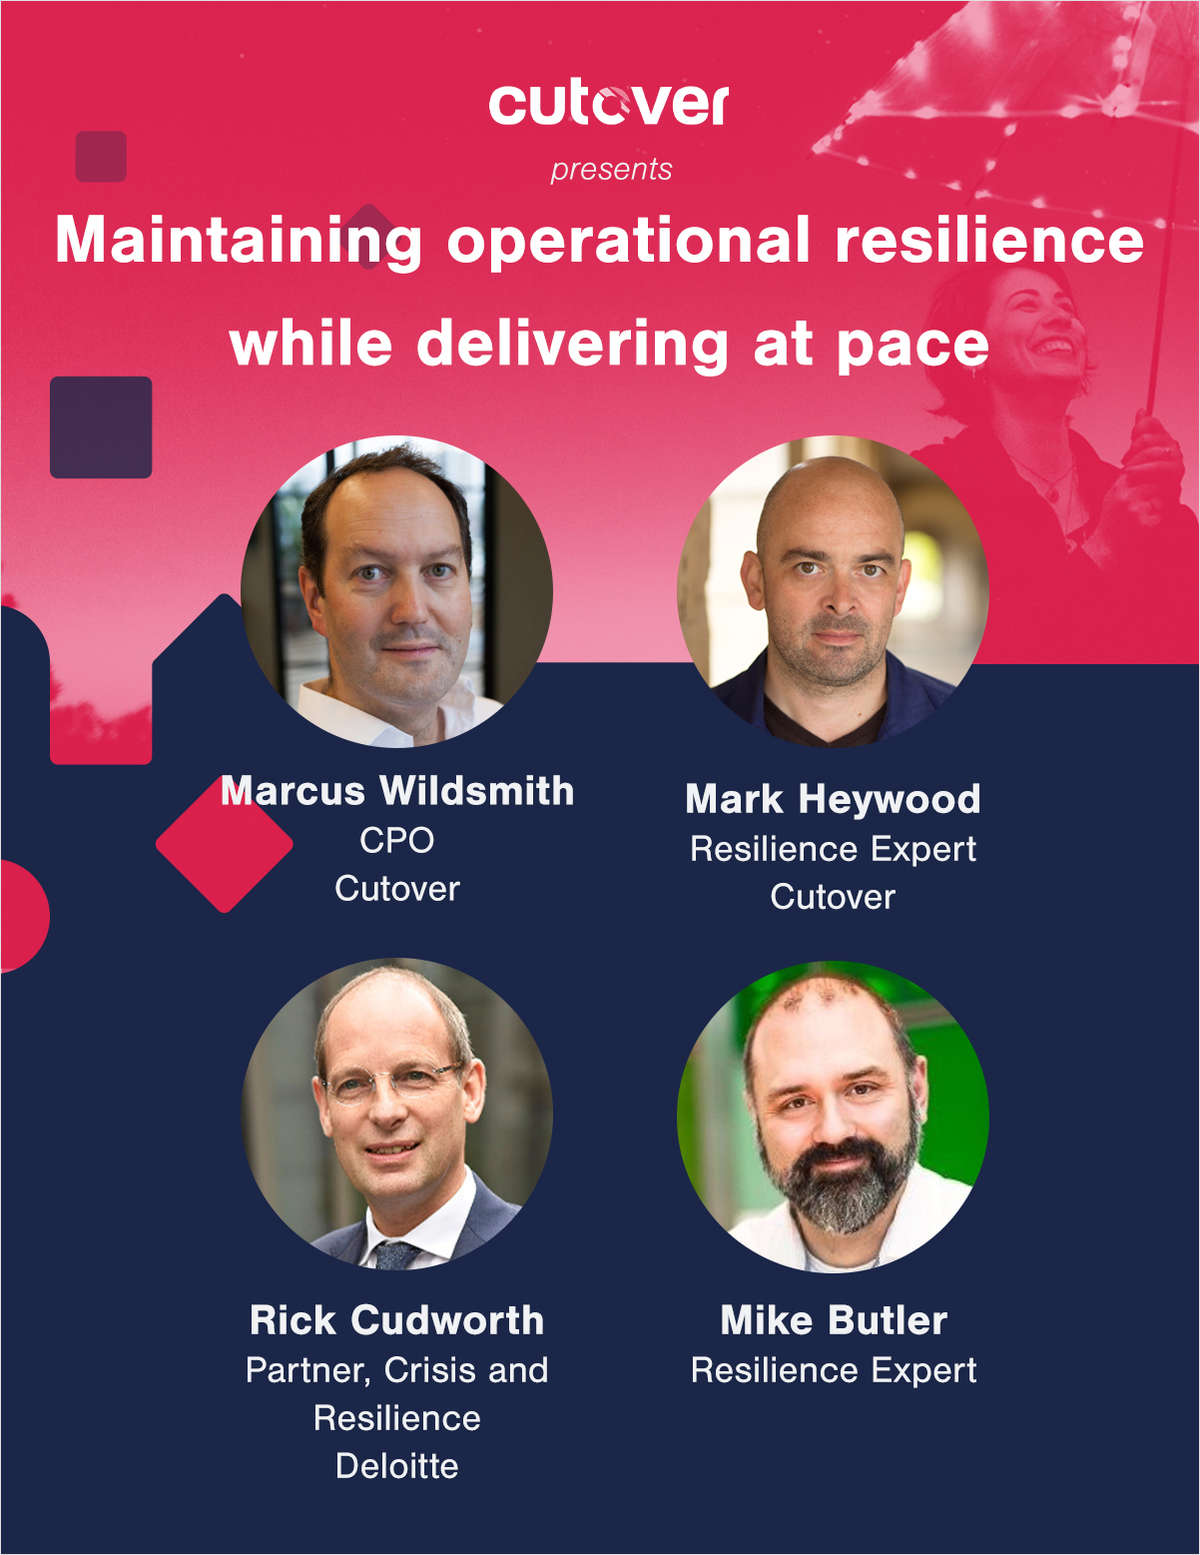 Maintaining Operational Resilience While Delivering at Pace